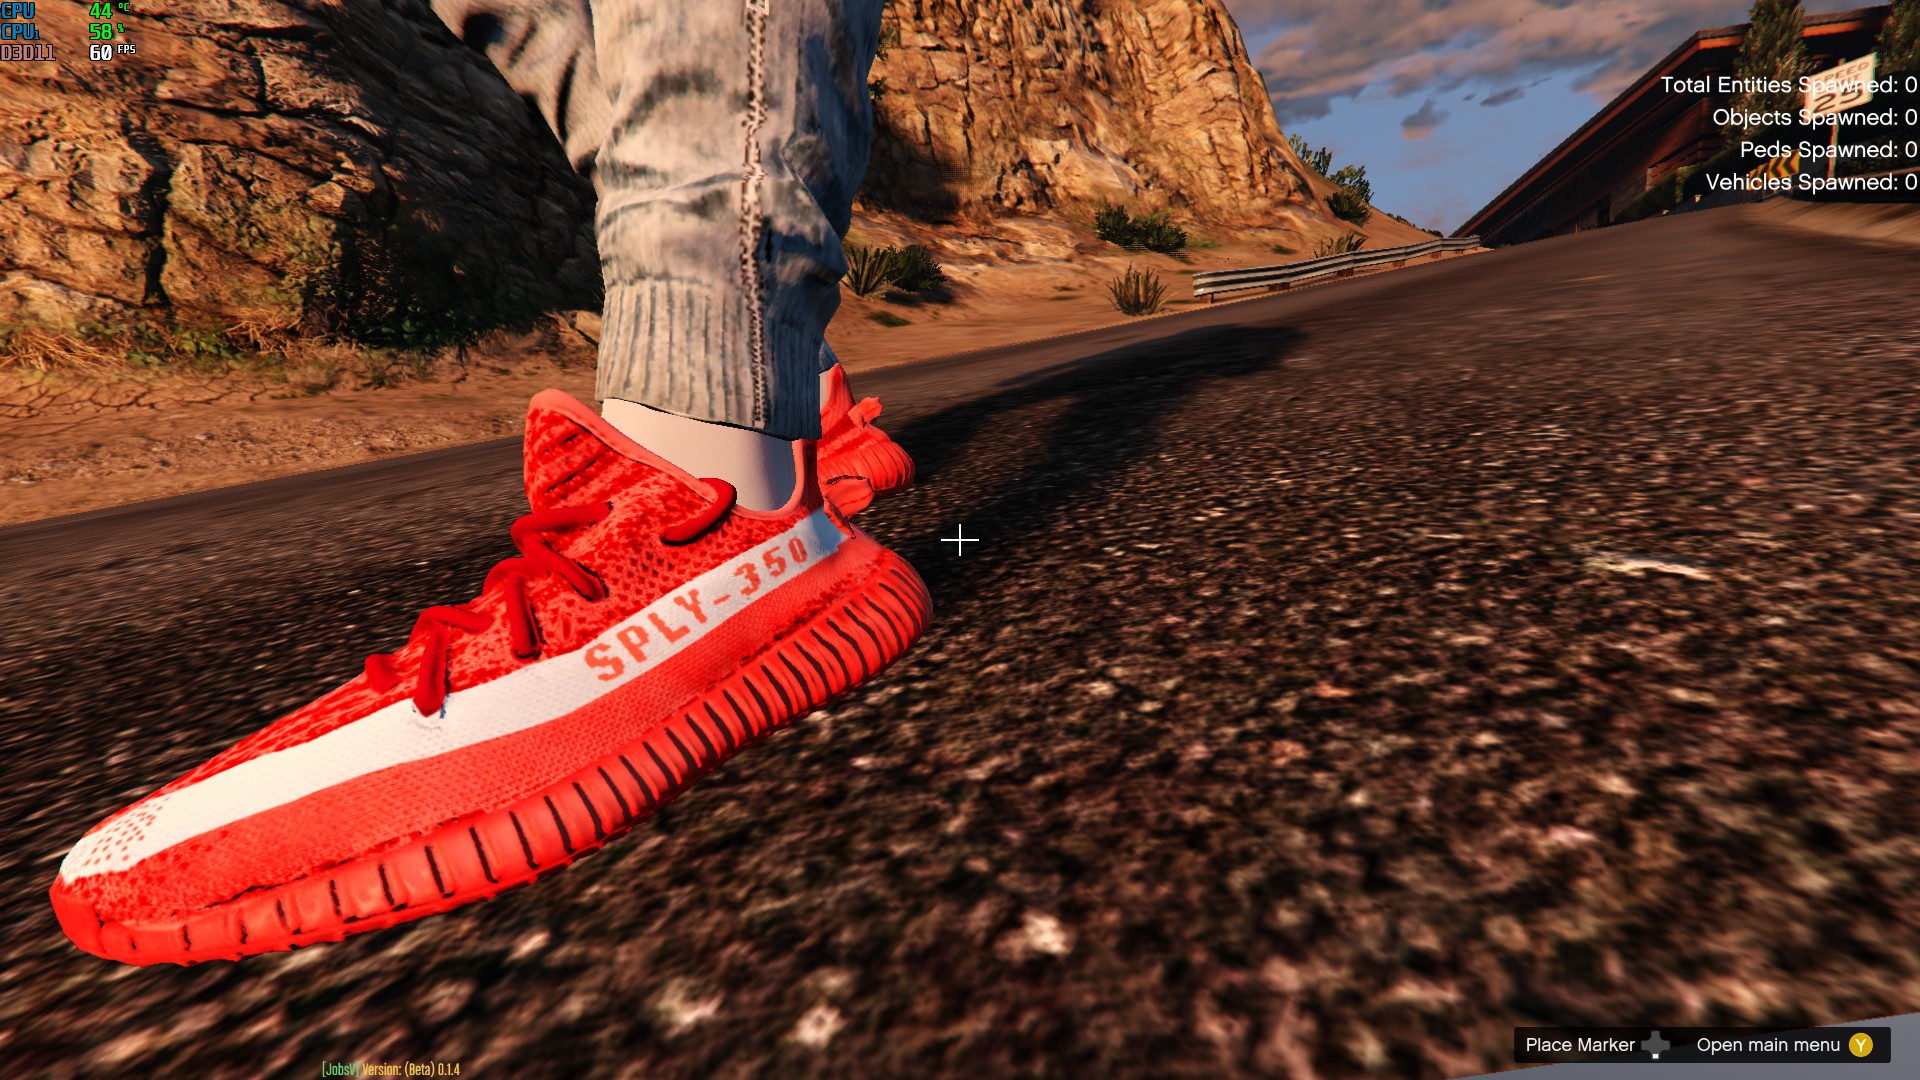 low priced 54dd9 39f56 Adidas Yeezy Boost 350 V2 Teach Red Zebra - GTA5-Mods.com